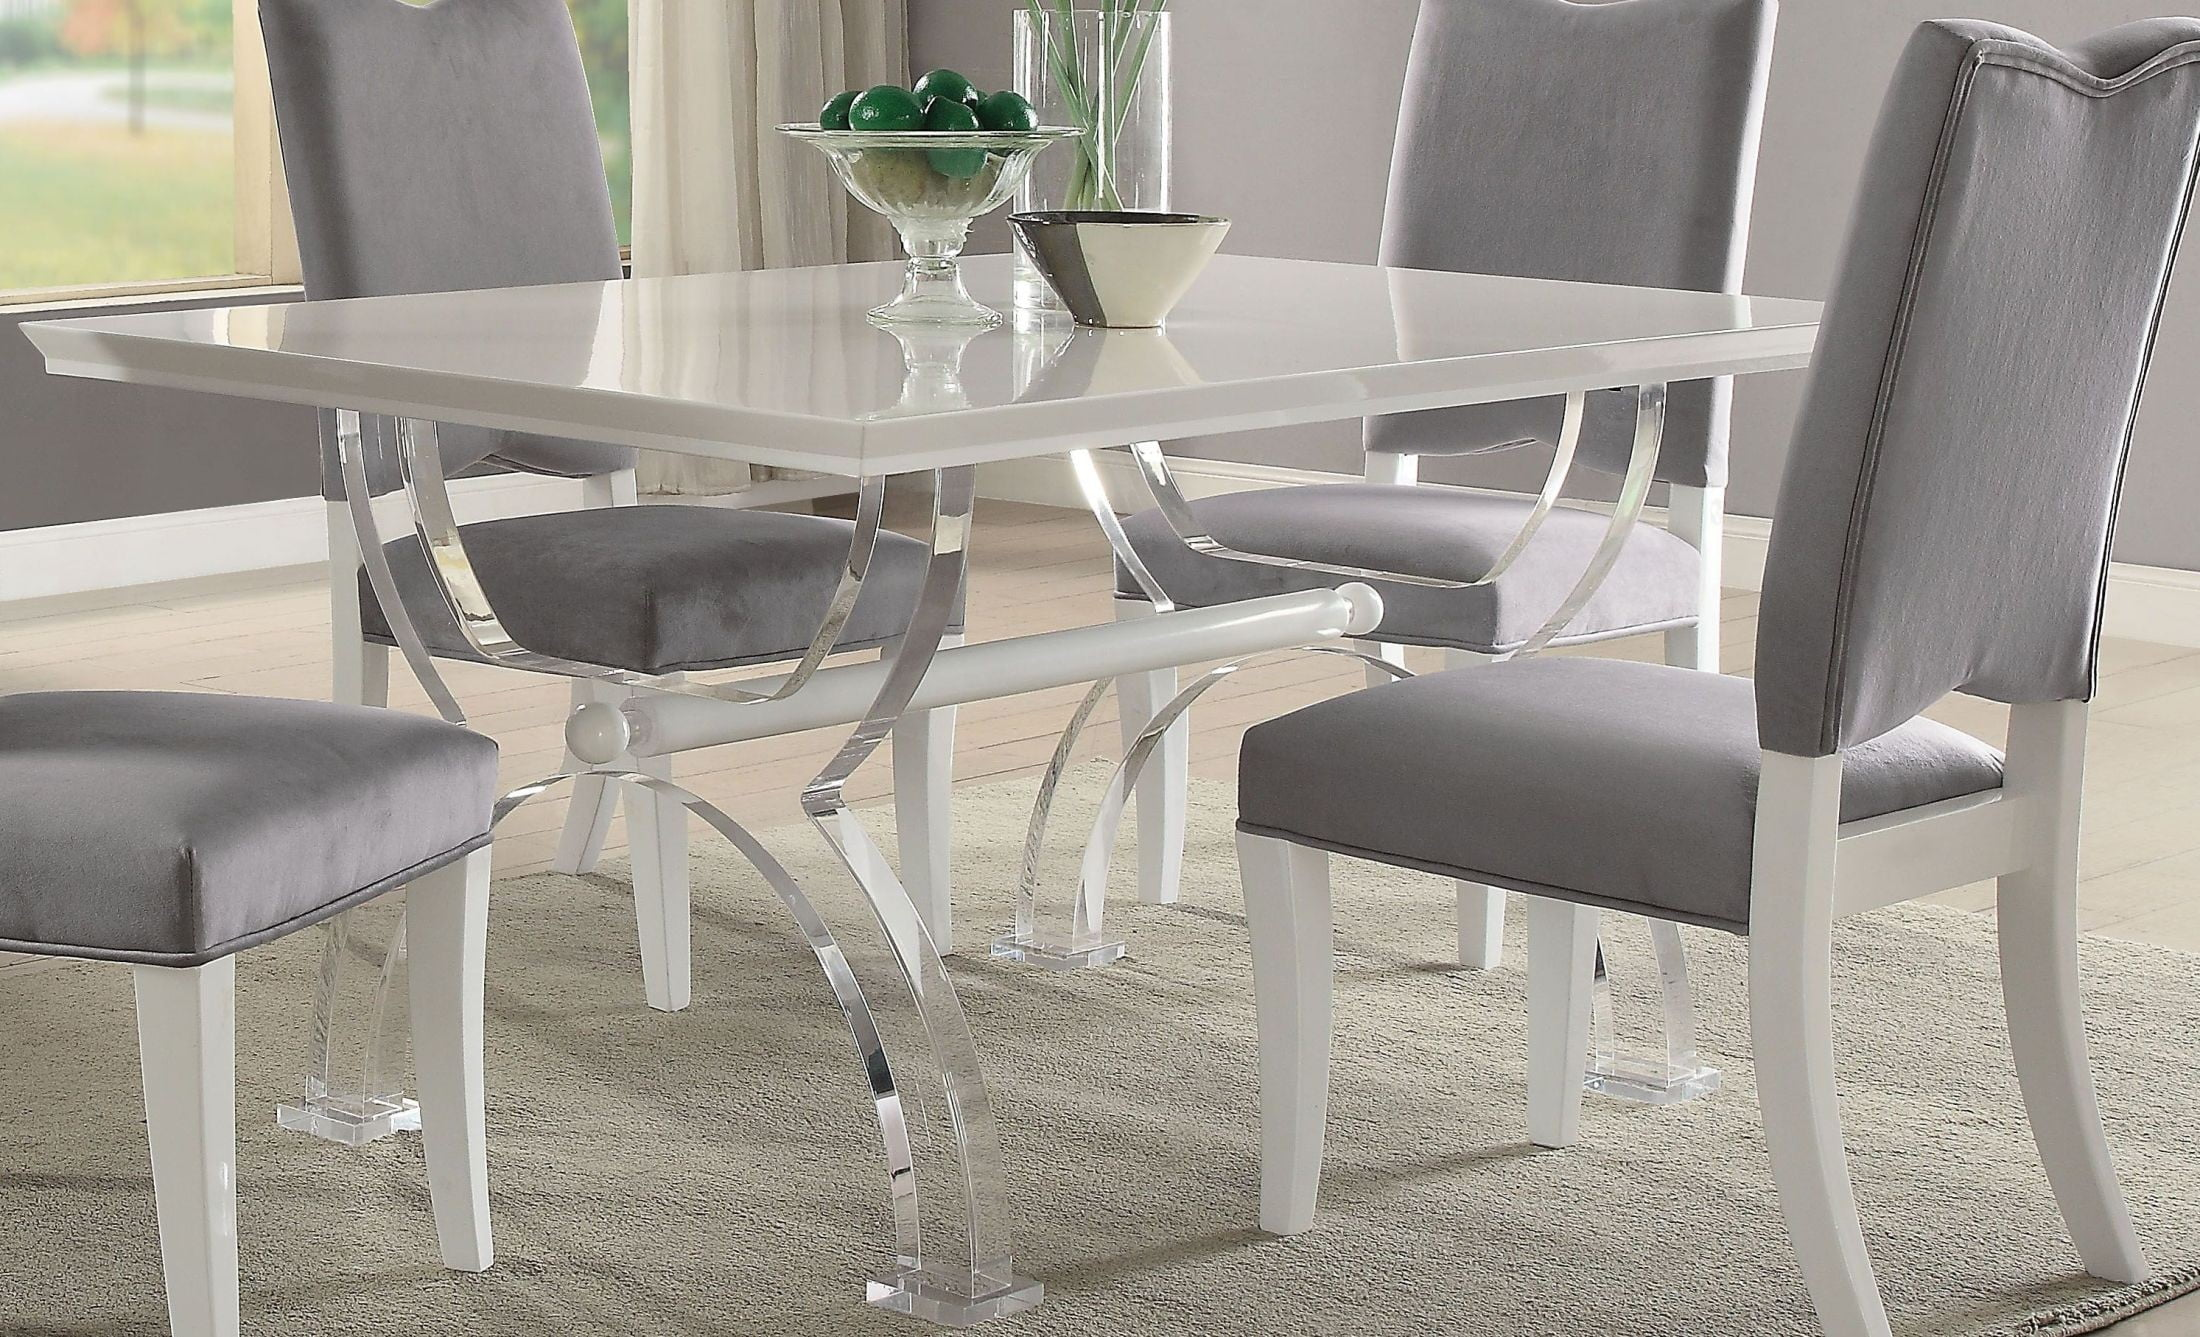 martinus high gloss white and clear acrylic dining table martinus high gloss white and clear acrylic dining table from acme      rh   colemanfurniture com